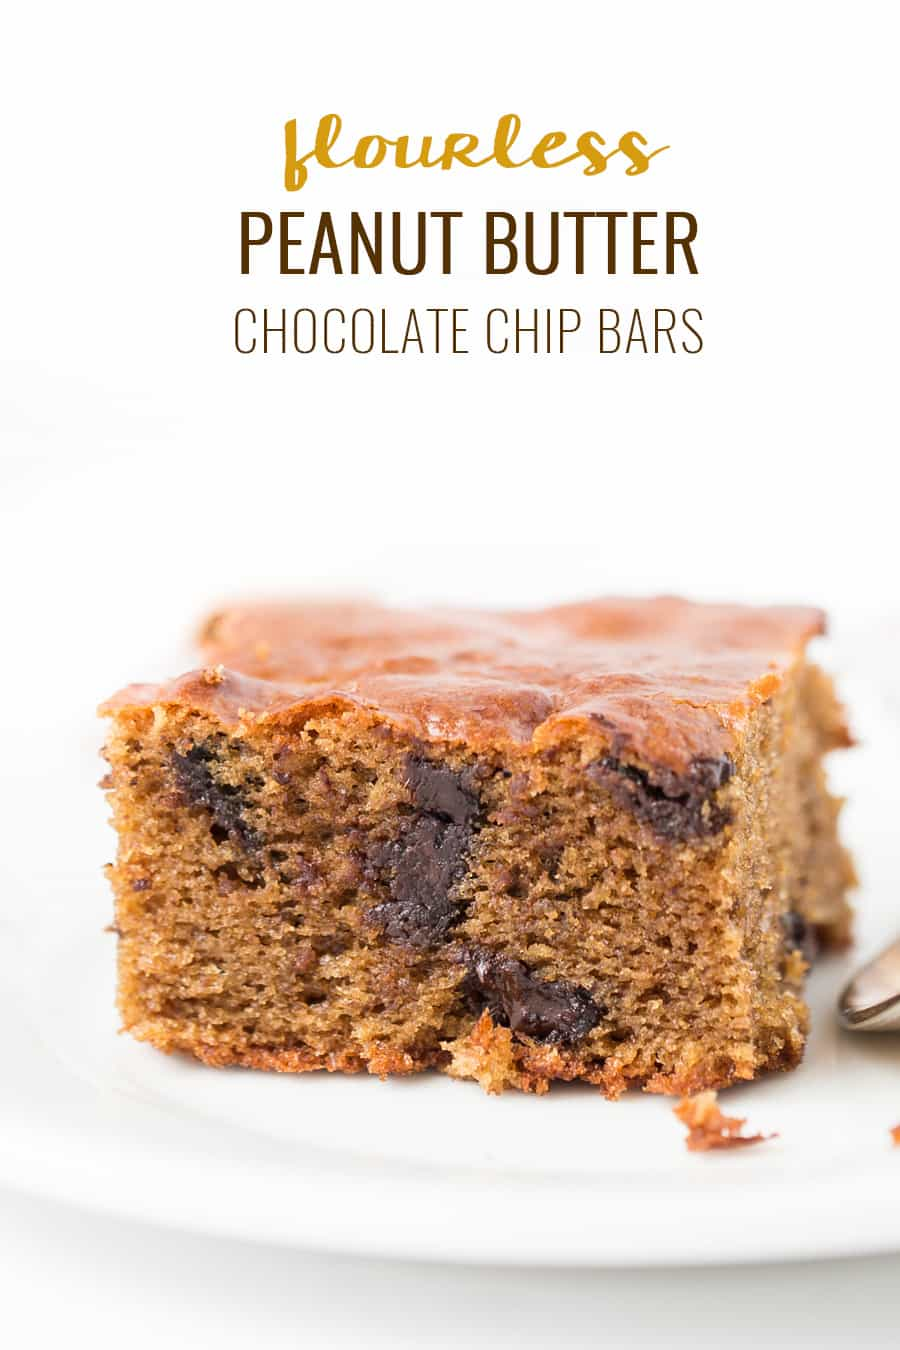 These FLOURLESS Peanut Butter Chocolate Chip Bars are made in just one bowl, with 8 ingredients! [gluten-free + refined sugar-free]